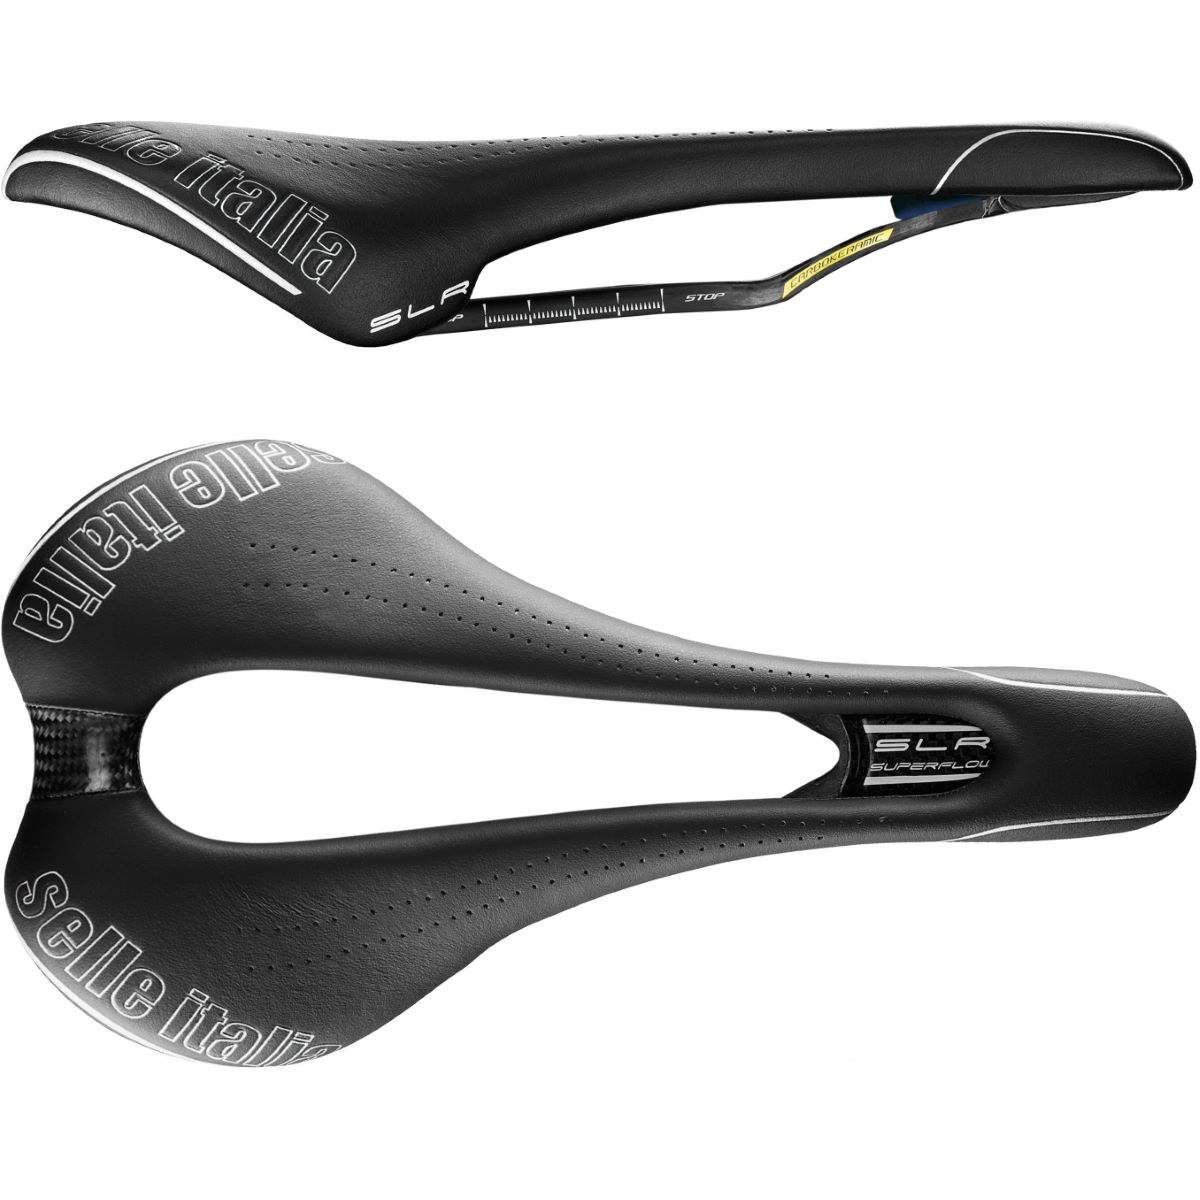 Sillín Selle Italia SLR Kit Carbonio Superflow - Sillines de competición